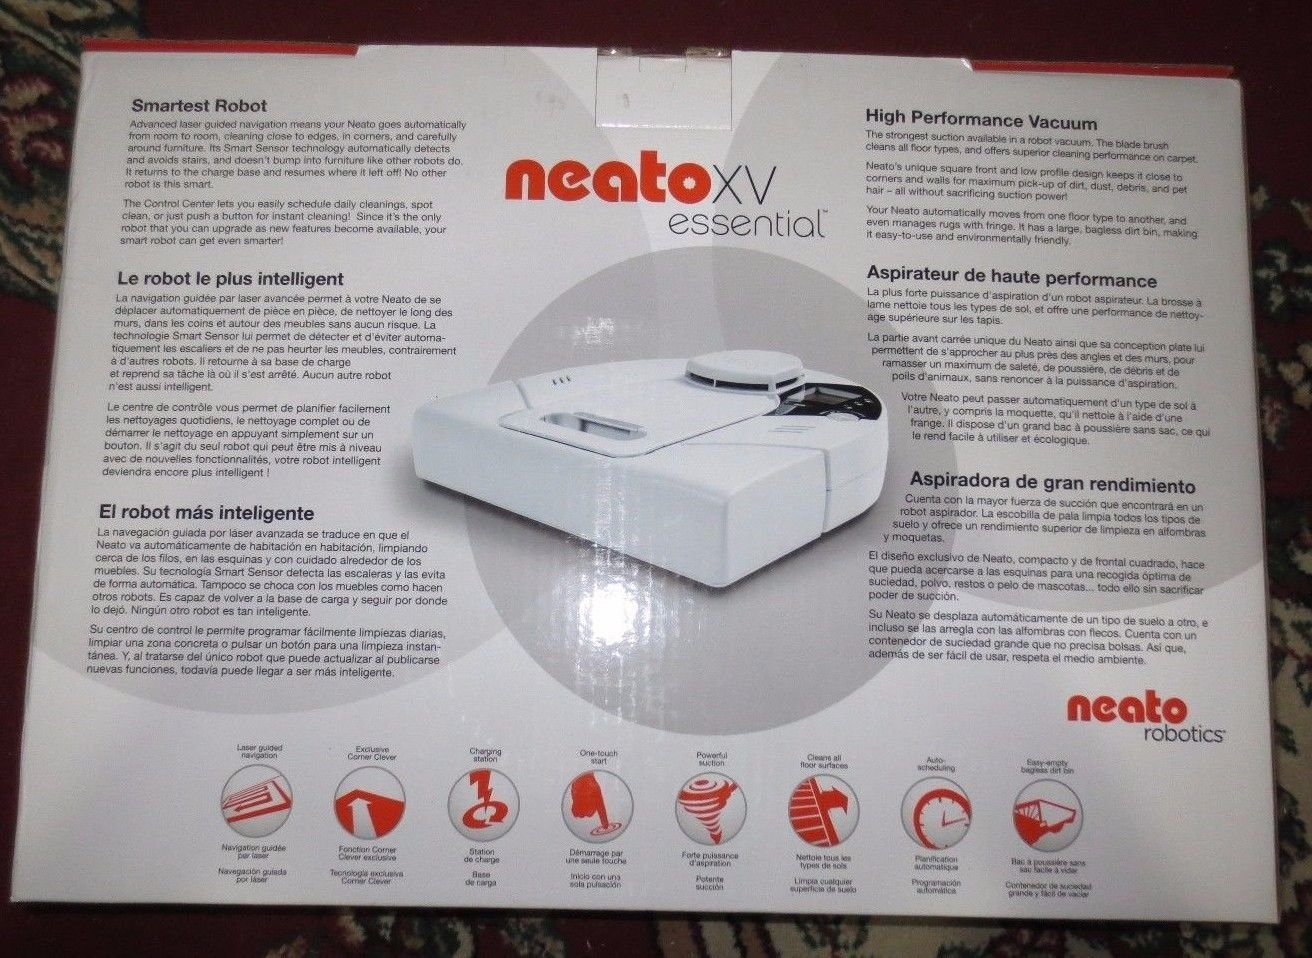 Amazon.com: Neato XV Essential Bagless Vacuum, 945-0016: Computers & Accessories